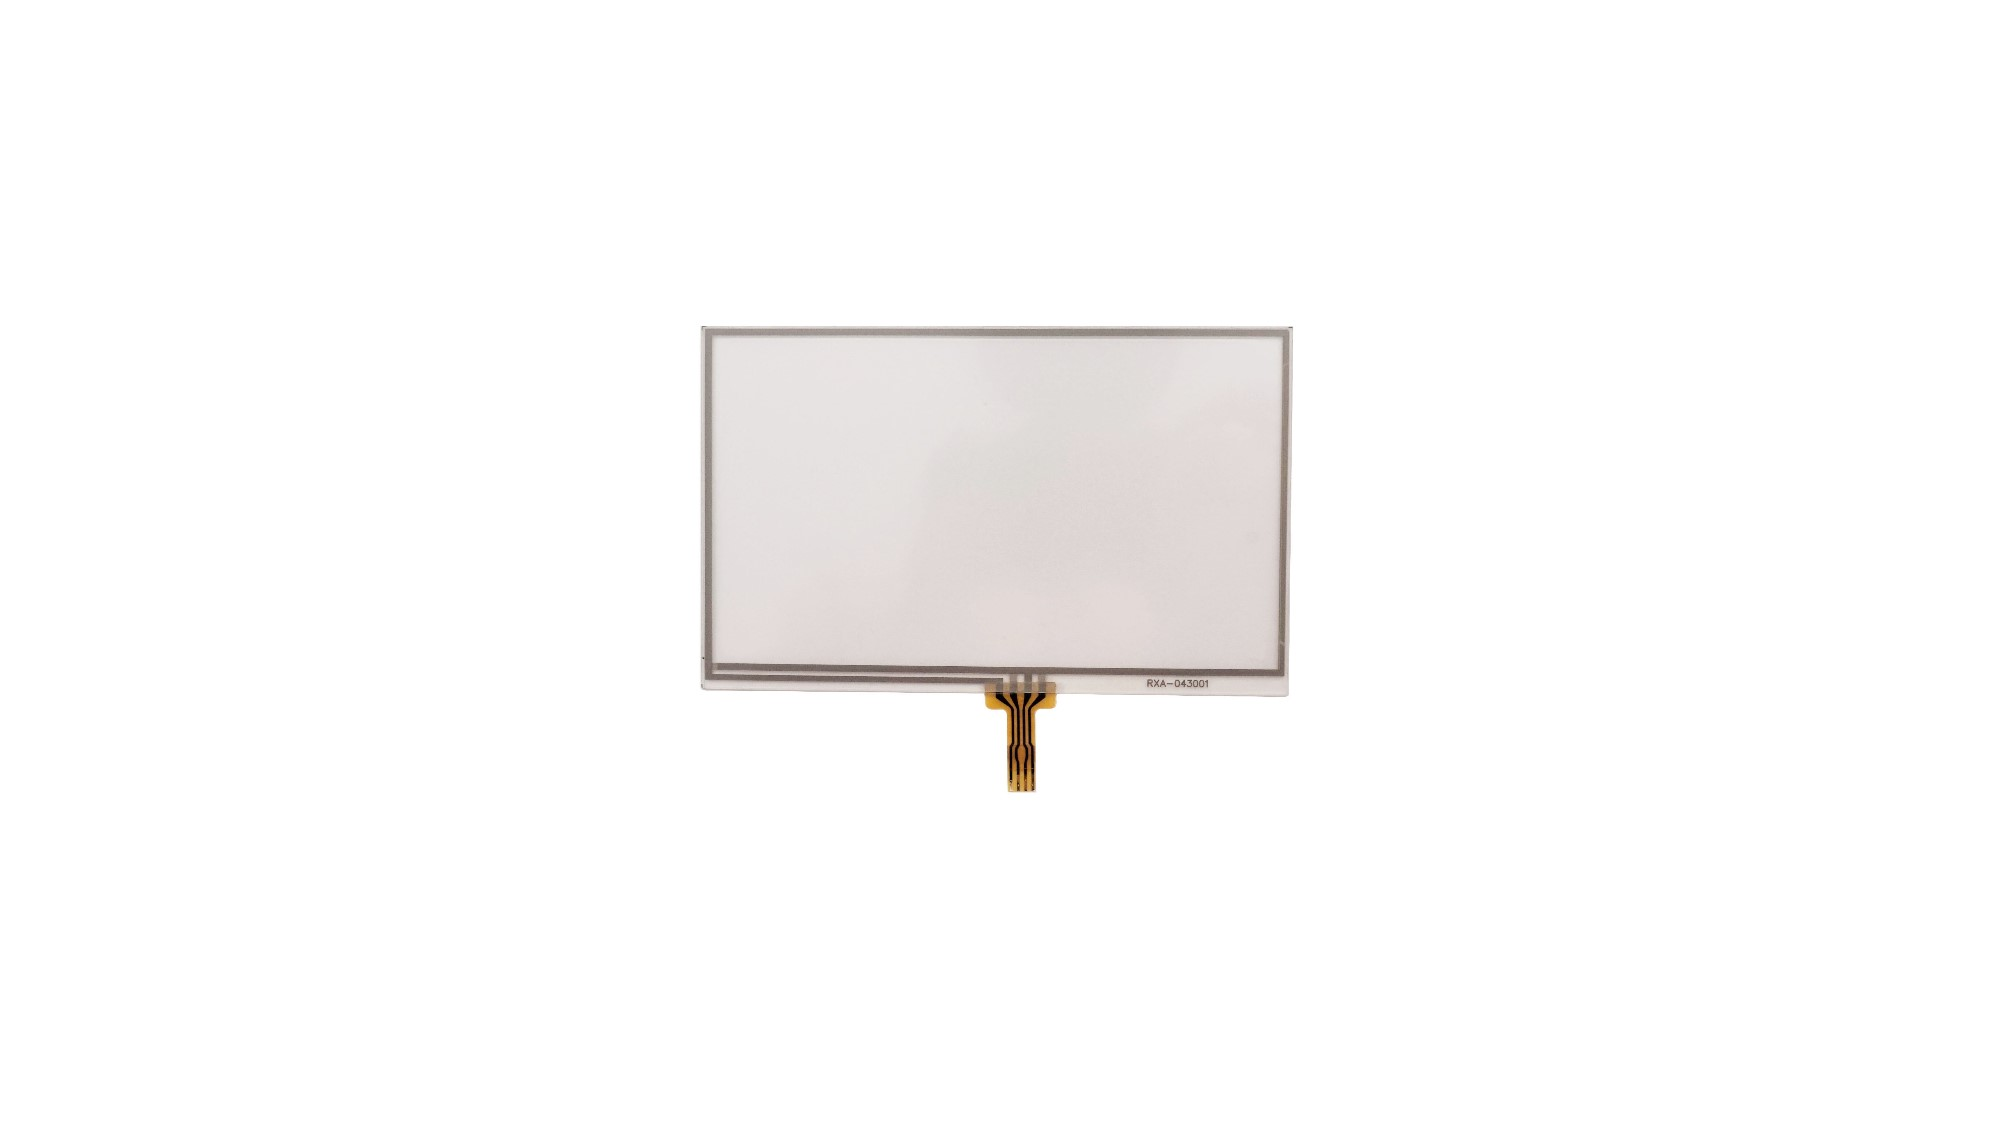 Medical Devices 4.3 Inch Resistive Touch Panel